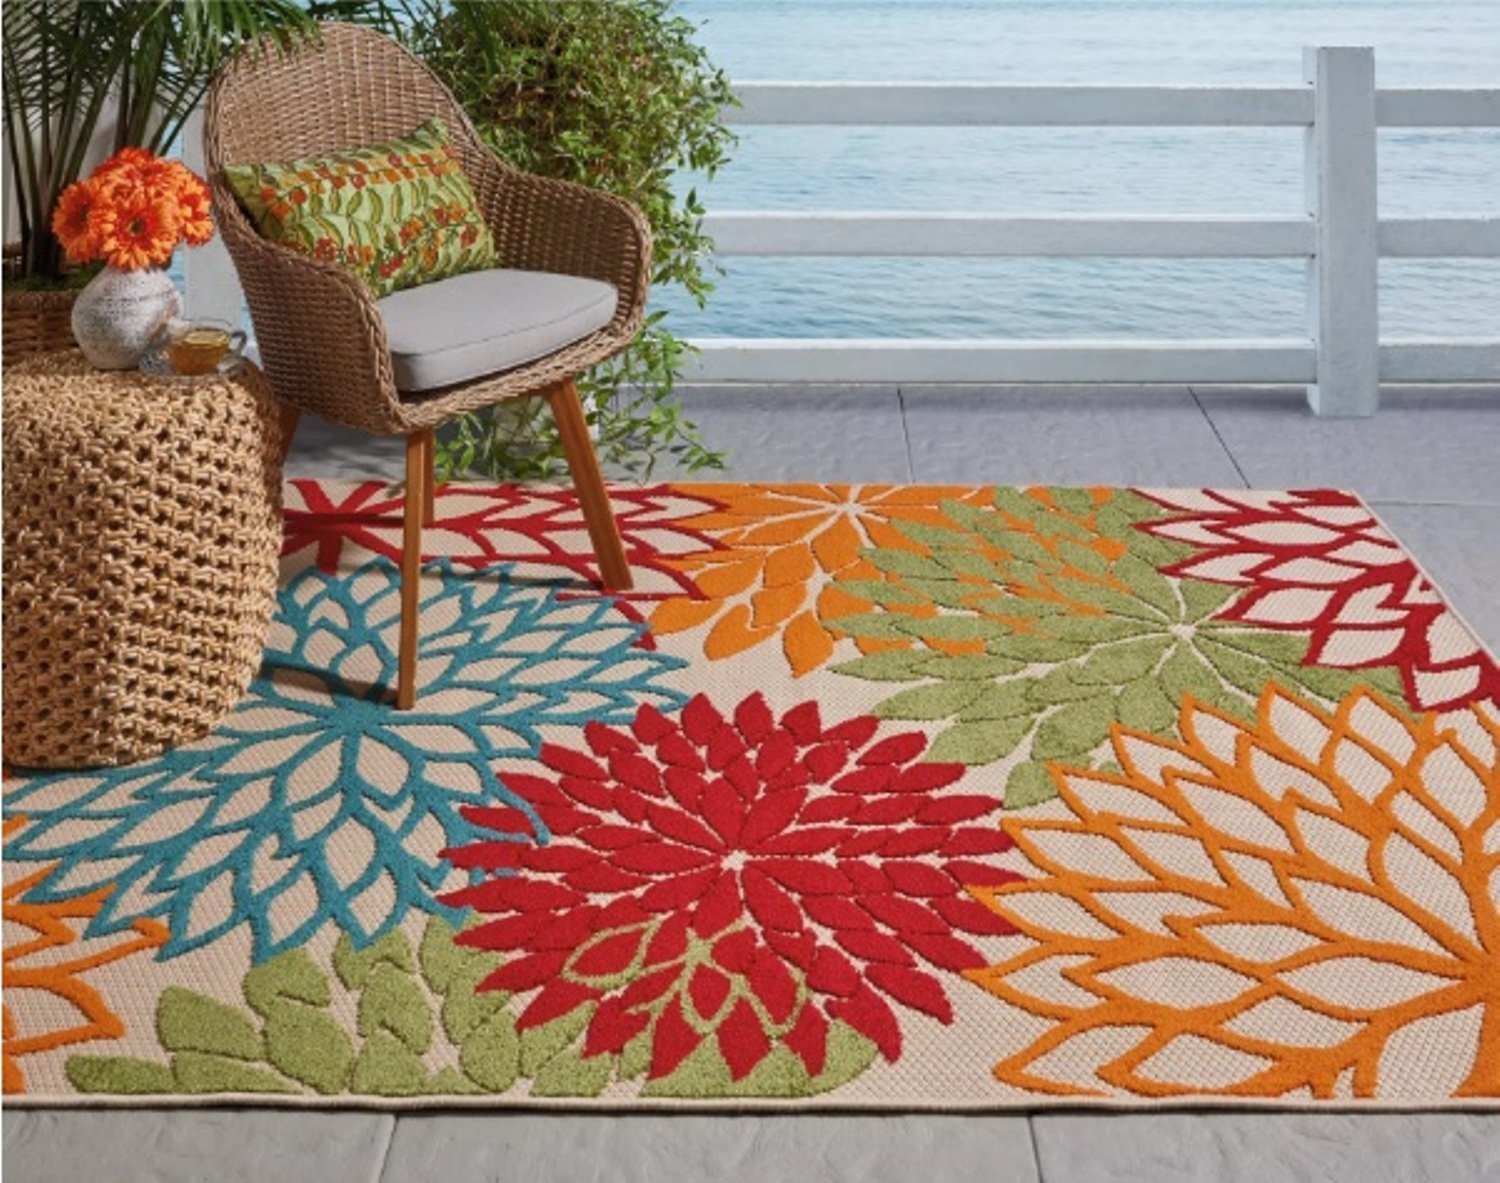 Featuring Tropical Garden Inspired Design Vibrant Floral Pattern Area Rug Rectangle Indoor Outdoor Living Room Bedroom Dining Patio Carpet Size 5 3 x 7 5 Colorful Stylish Chic Home Decor Green